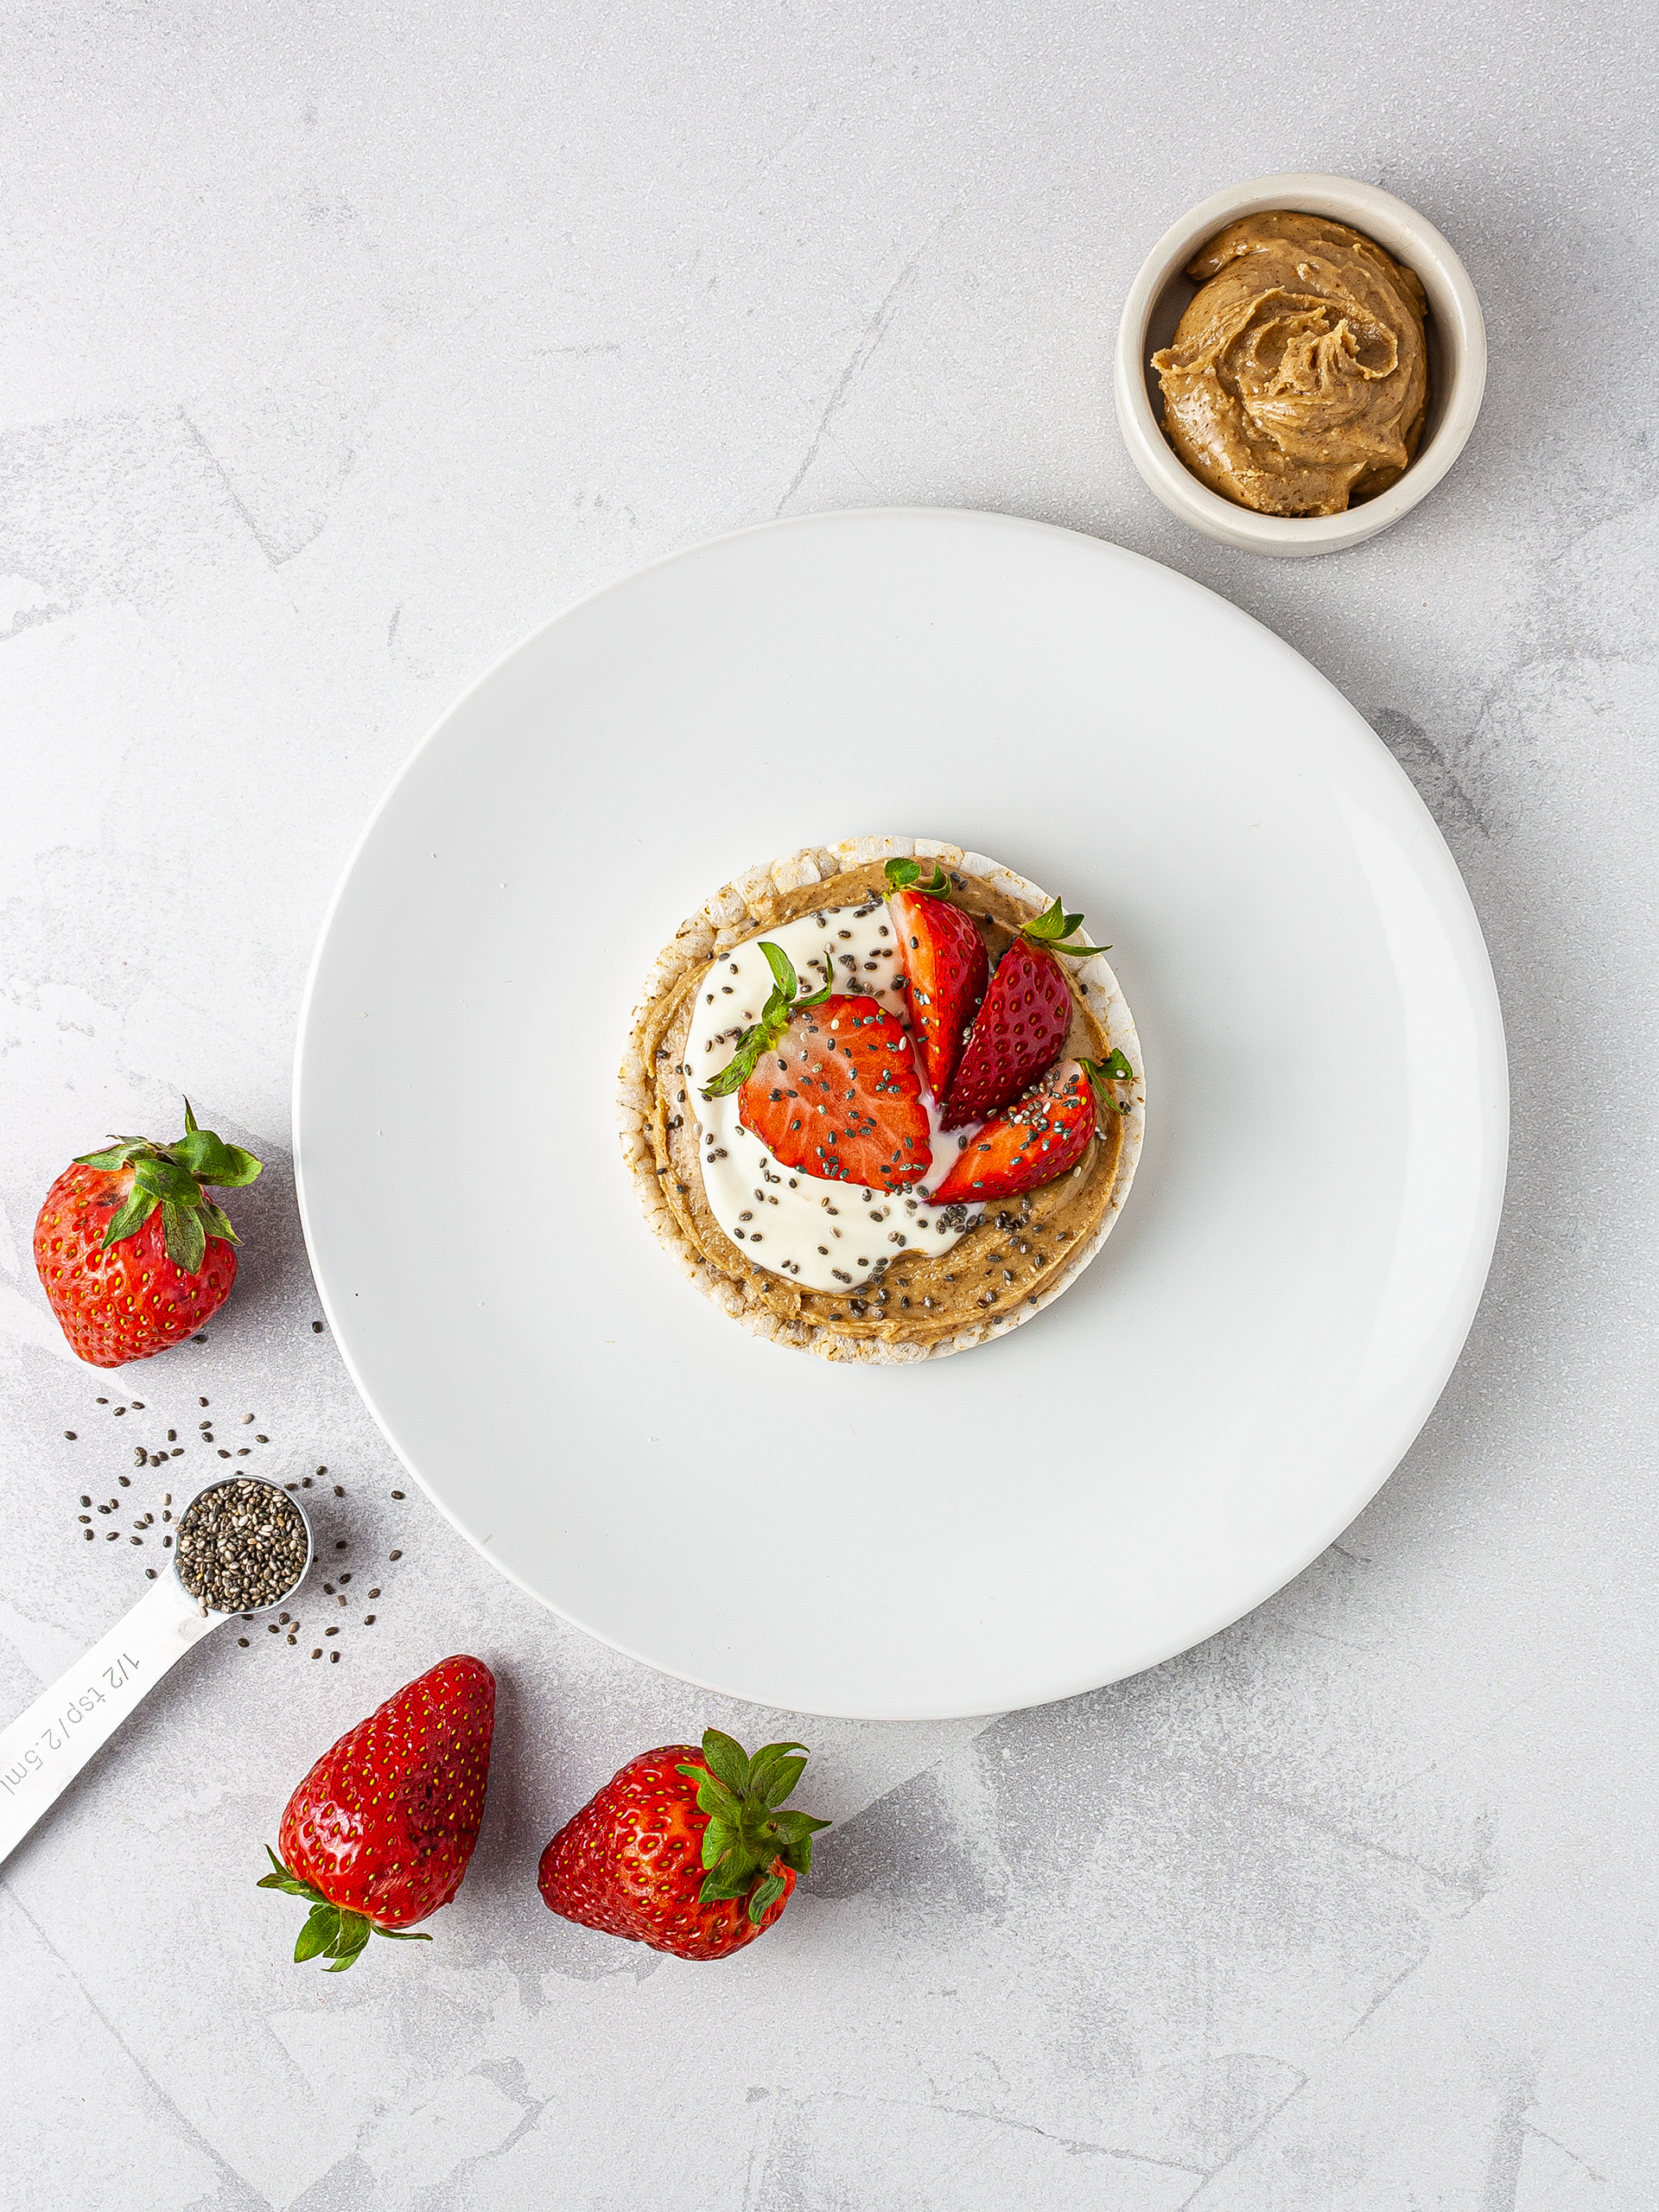 Rice cake with almond butter, yogurt, strawberries and chia seeds.